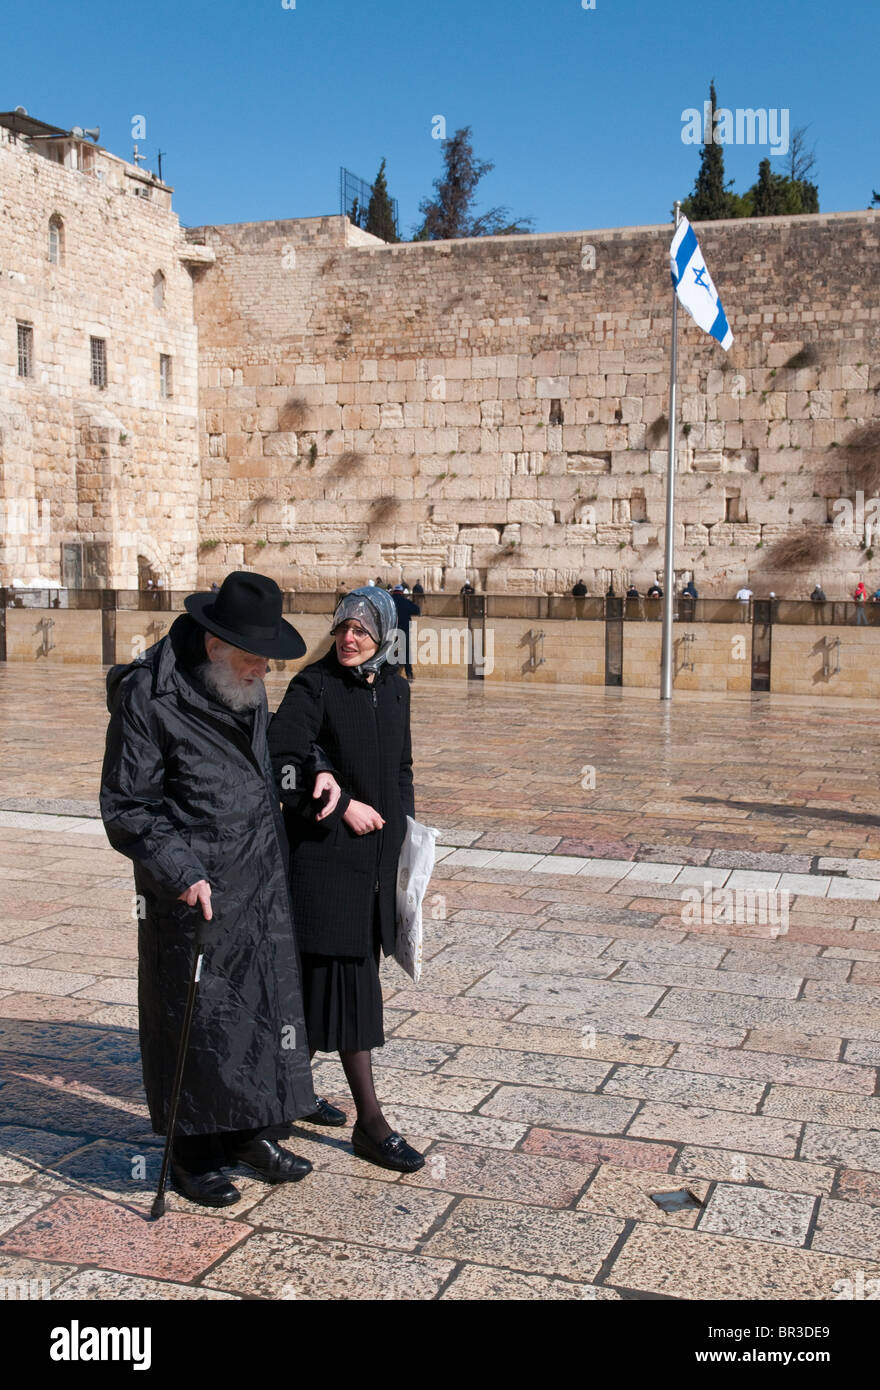 elderly orthodox jew and woman at western wall. Jerusalem Old City - Stock Image